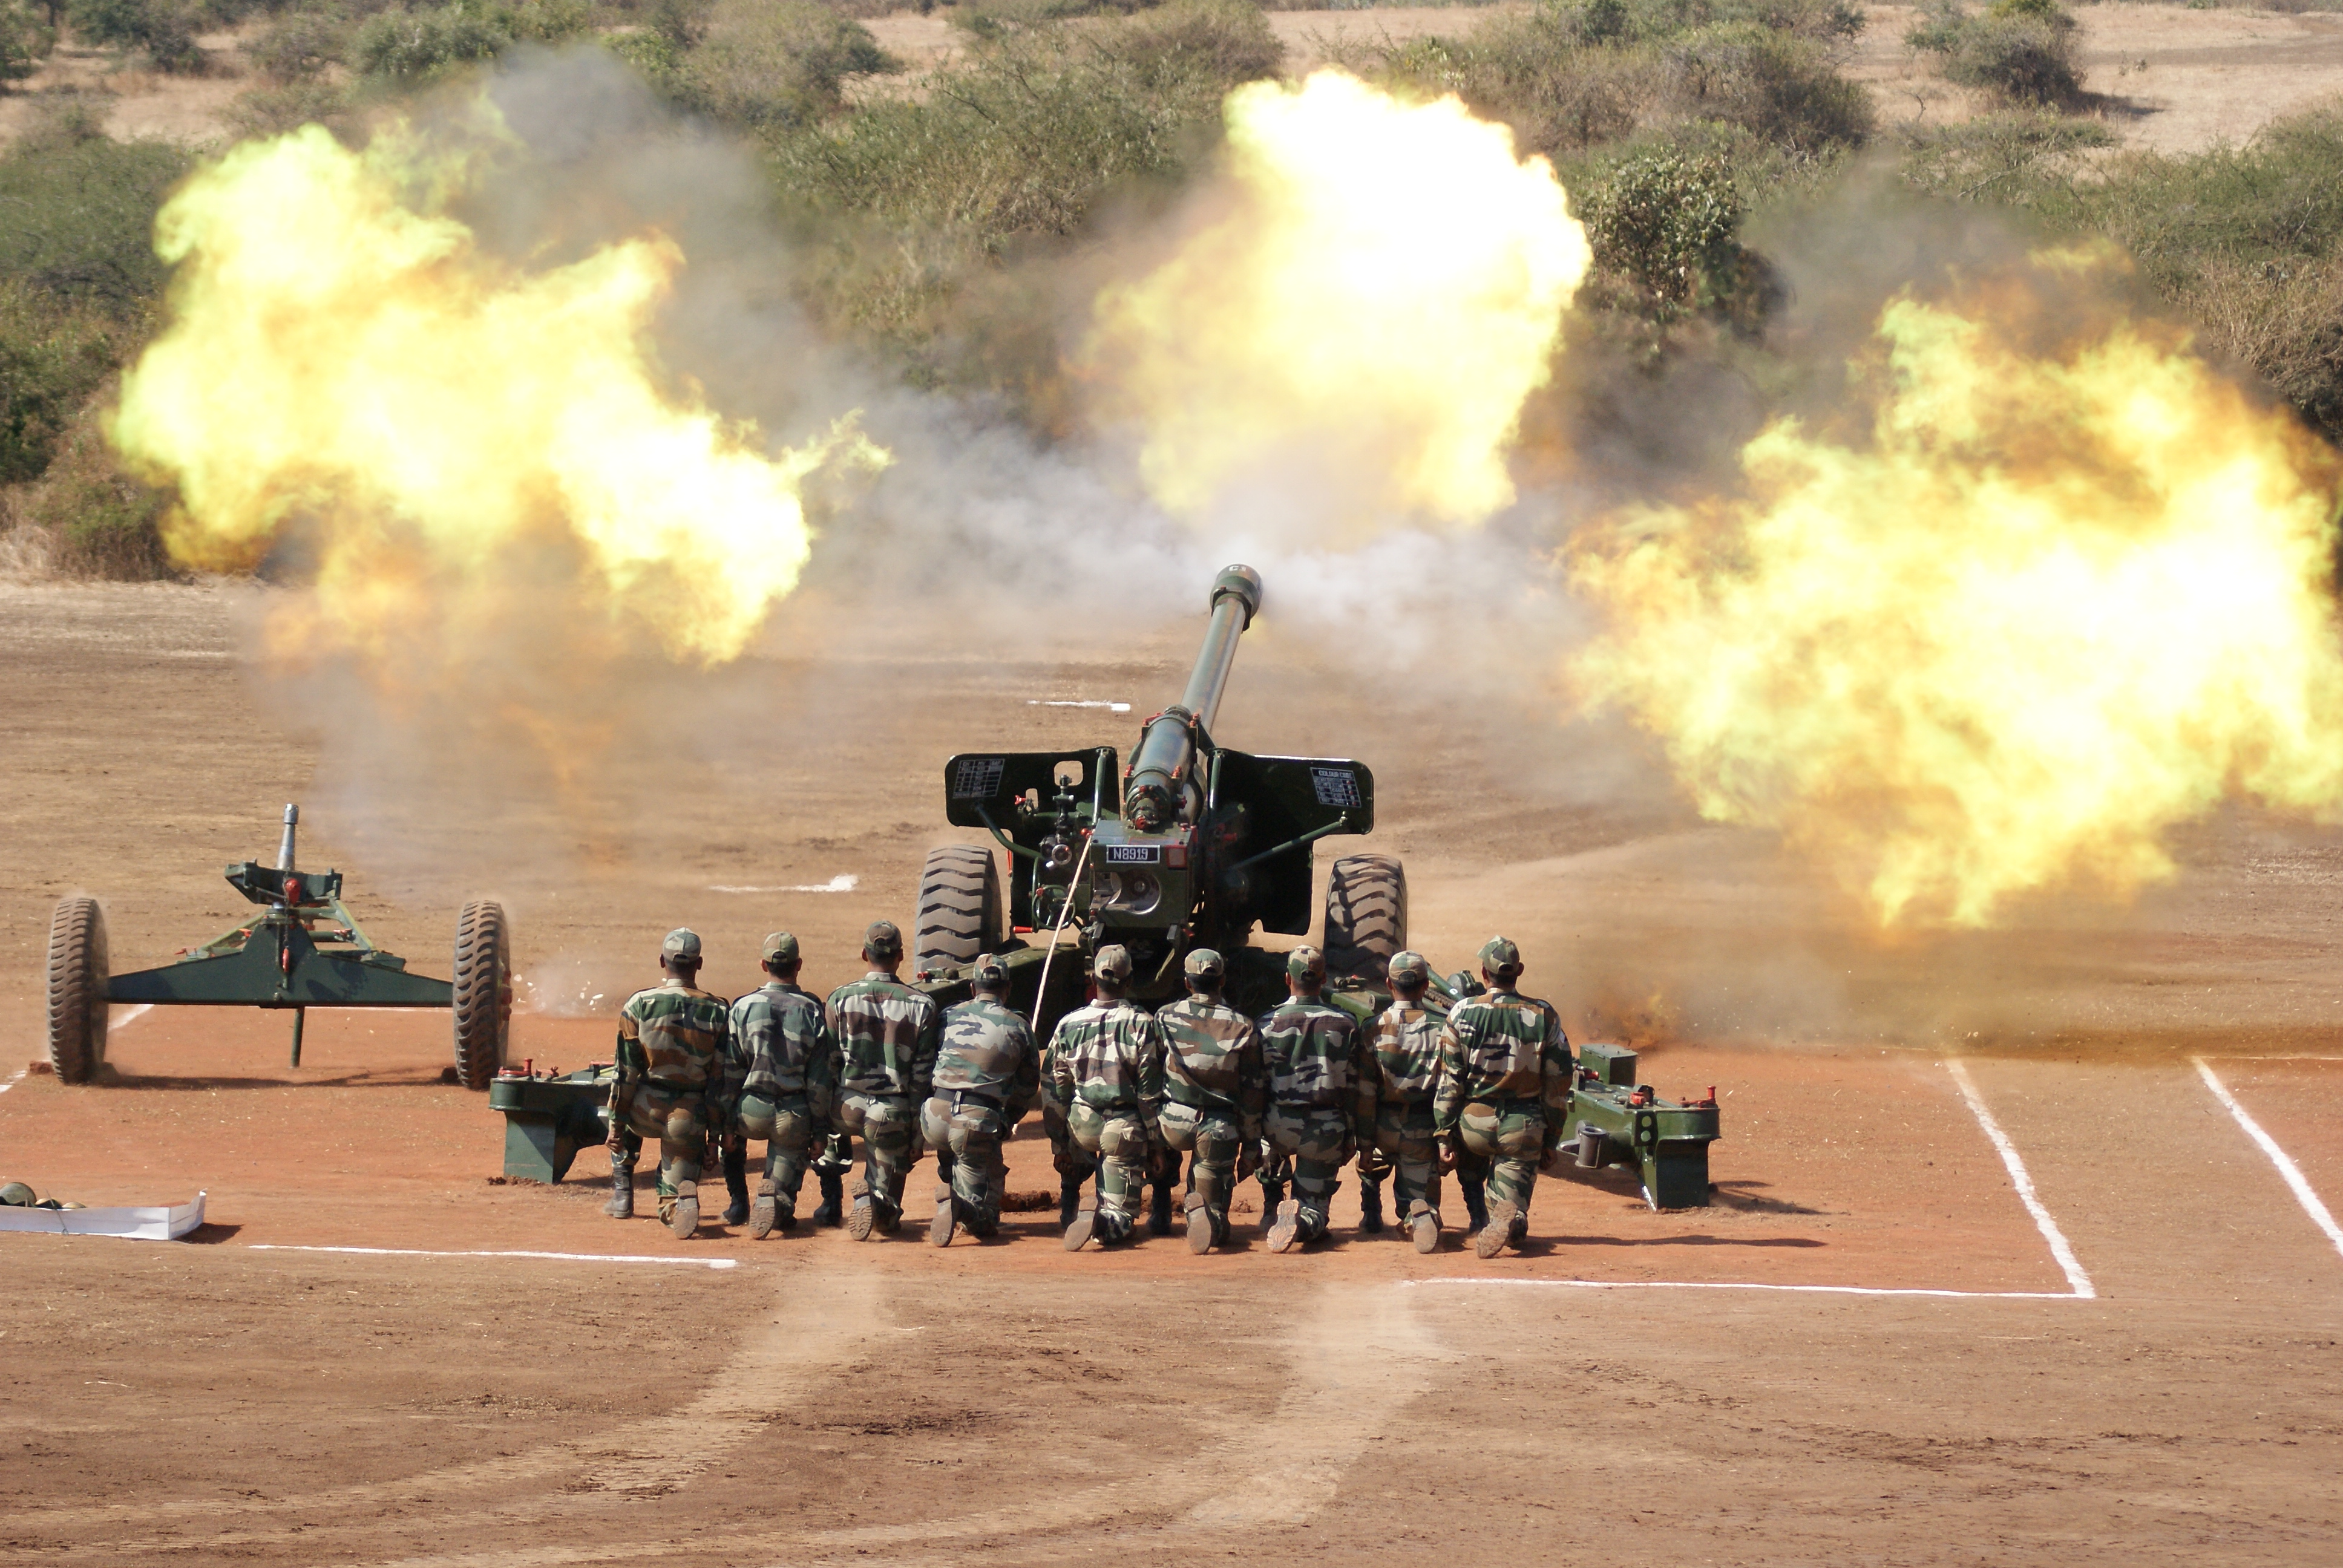 File:Fire power demo by Artillery of Indian Army.jpg - Wikimedia Commons